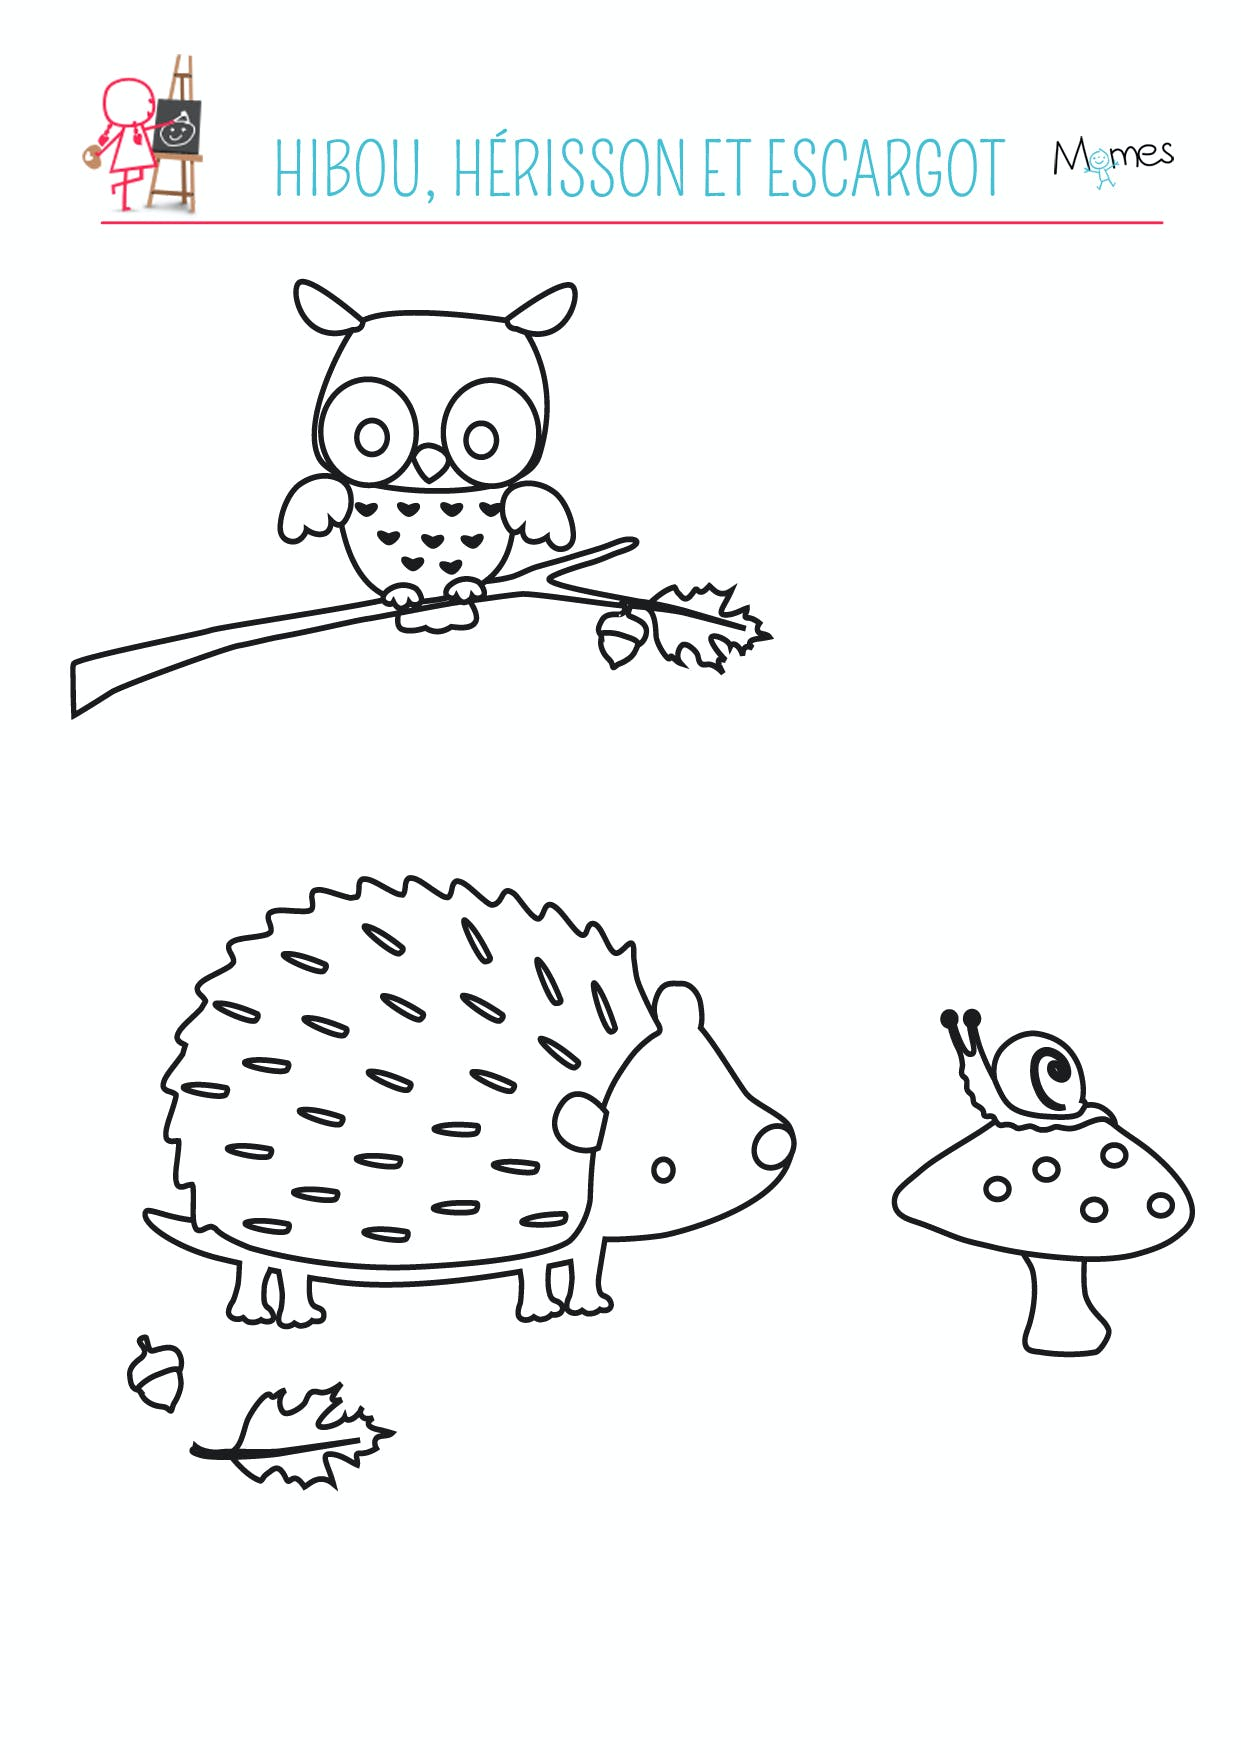 coloriage à imprimer hibou herisson escargot